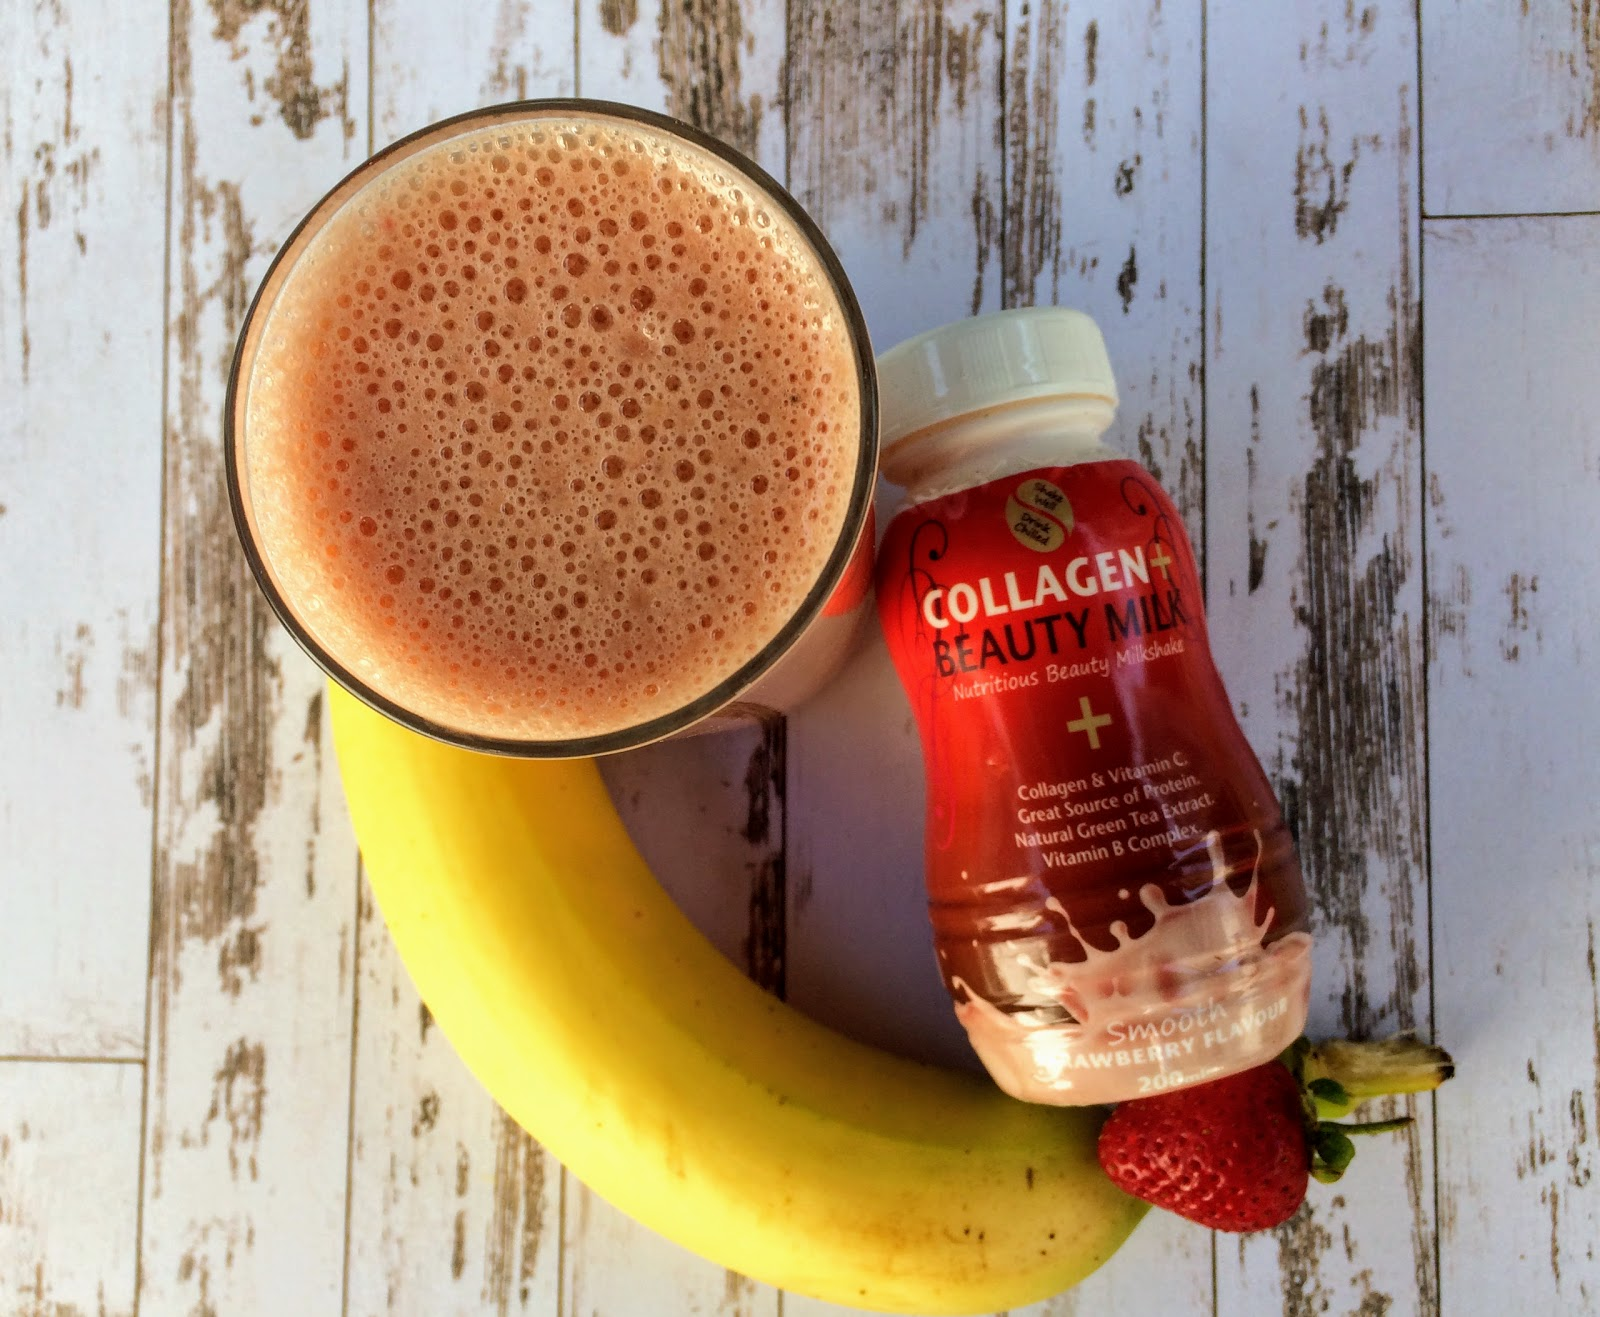 Strawberry and banana smoothie made with collagen beauty milk